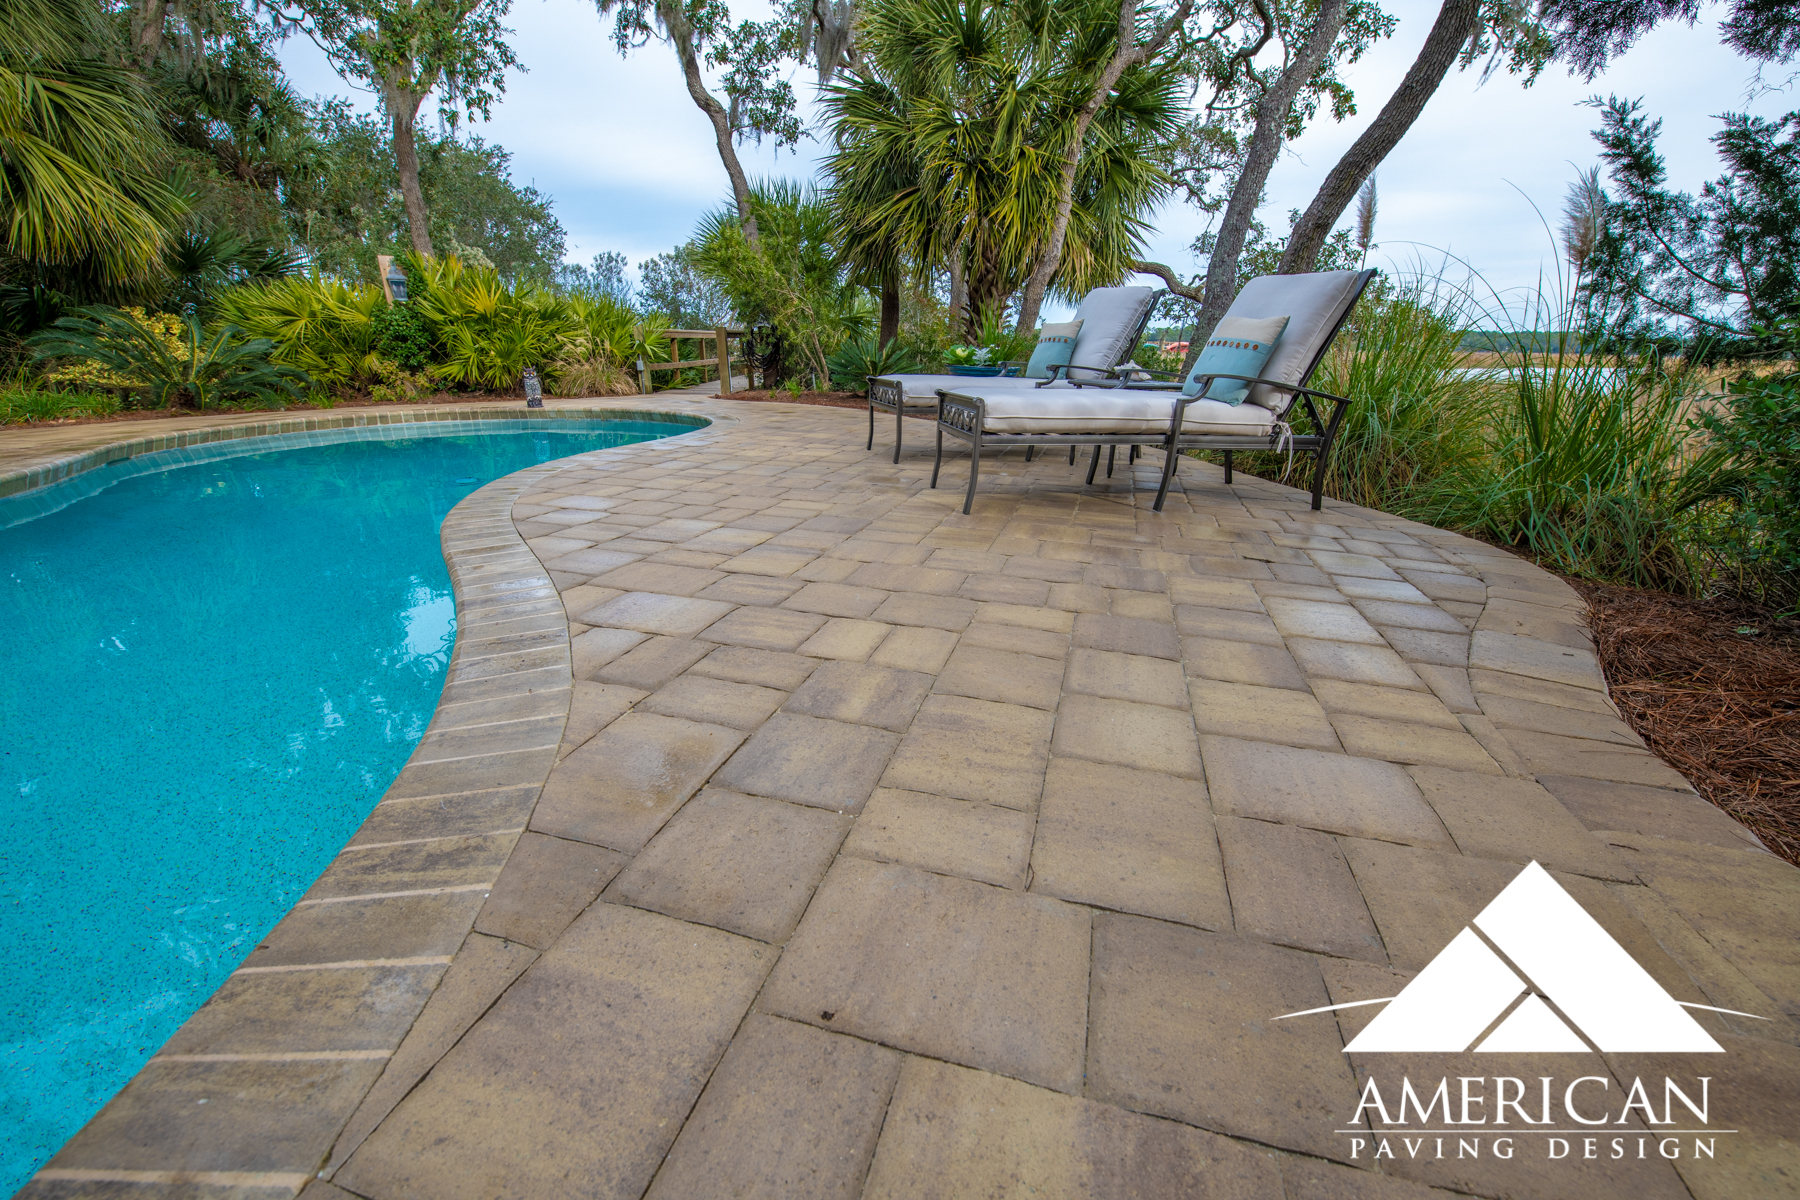 Pool Coping Options & Remodel Designs